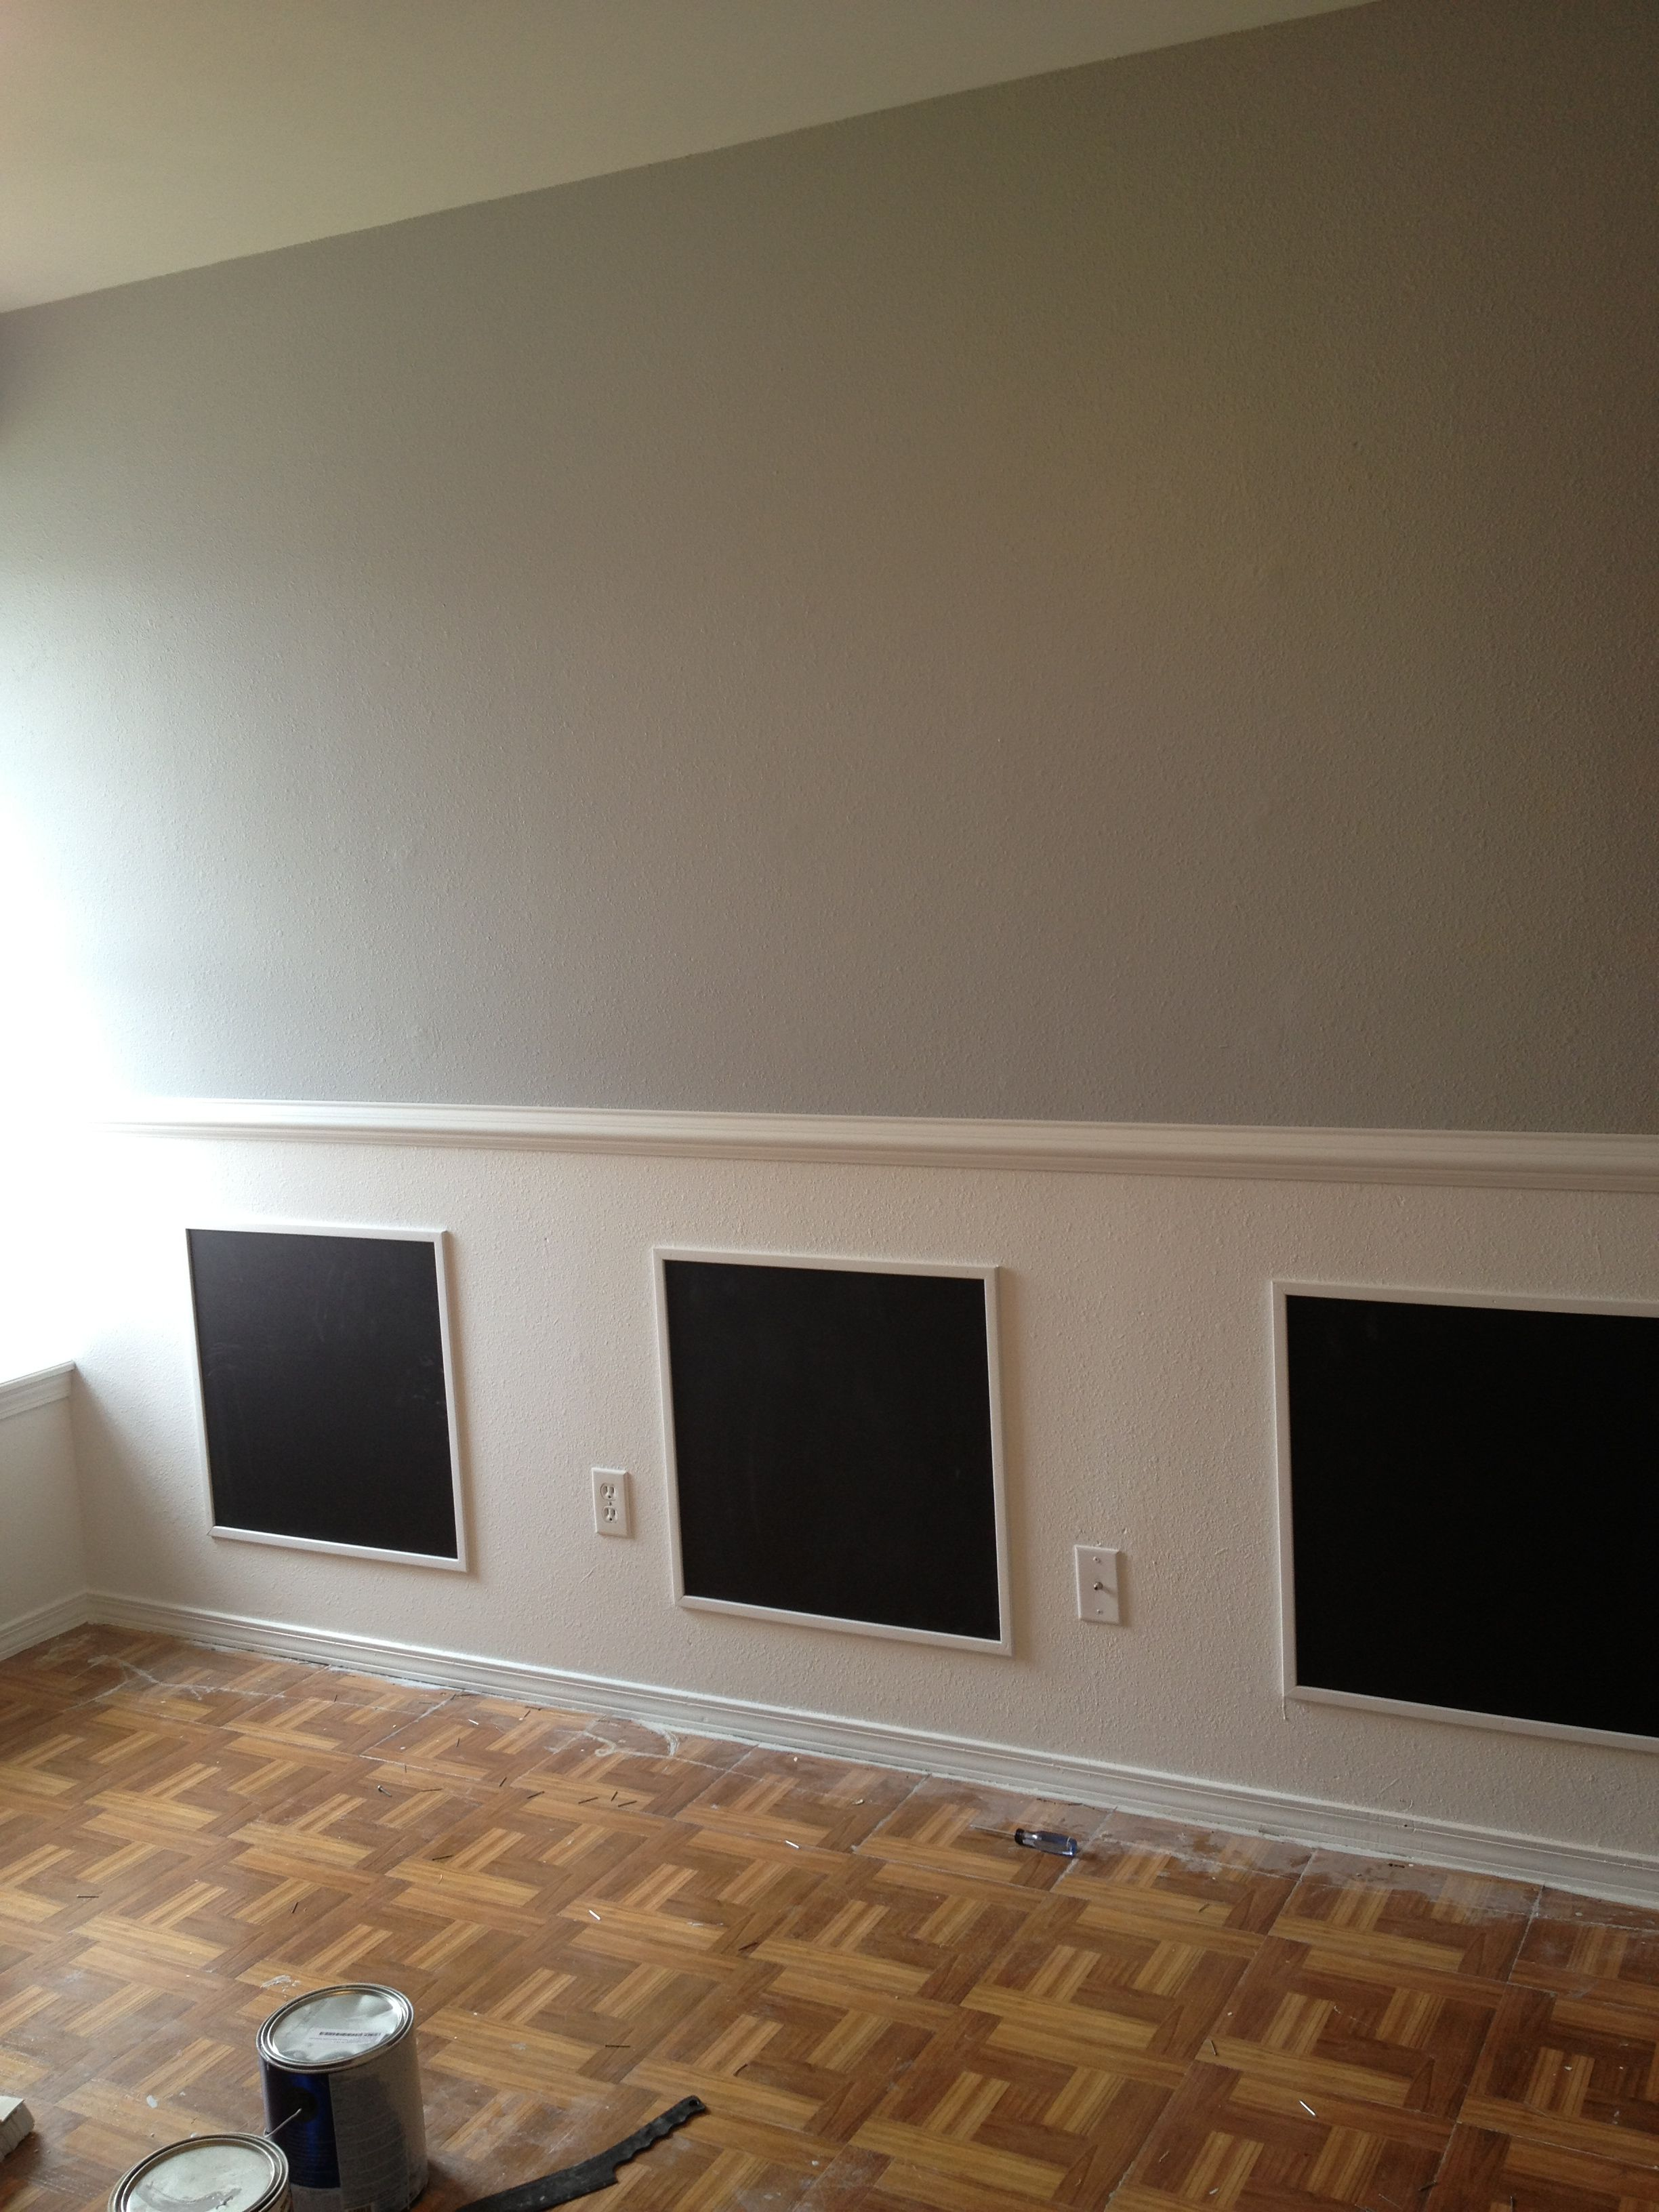 Chalkboard Molding For Toddler S Room Supplies Needed White Paint Nails Chair Rail